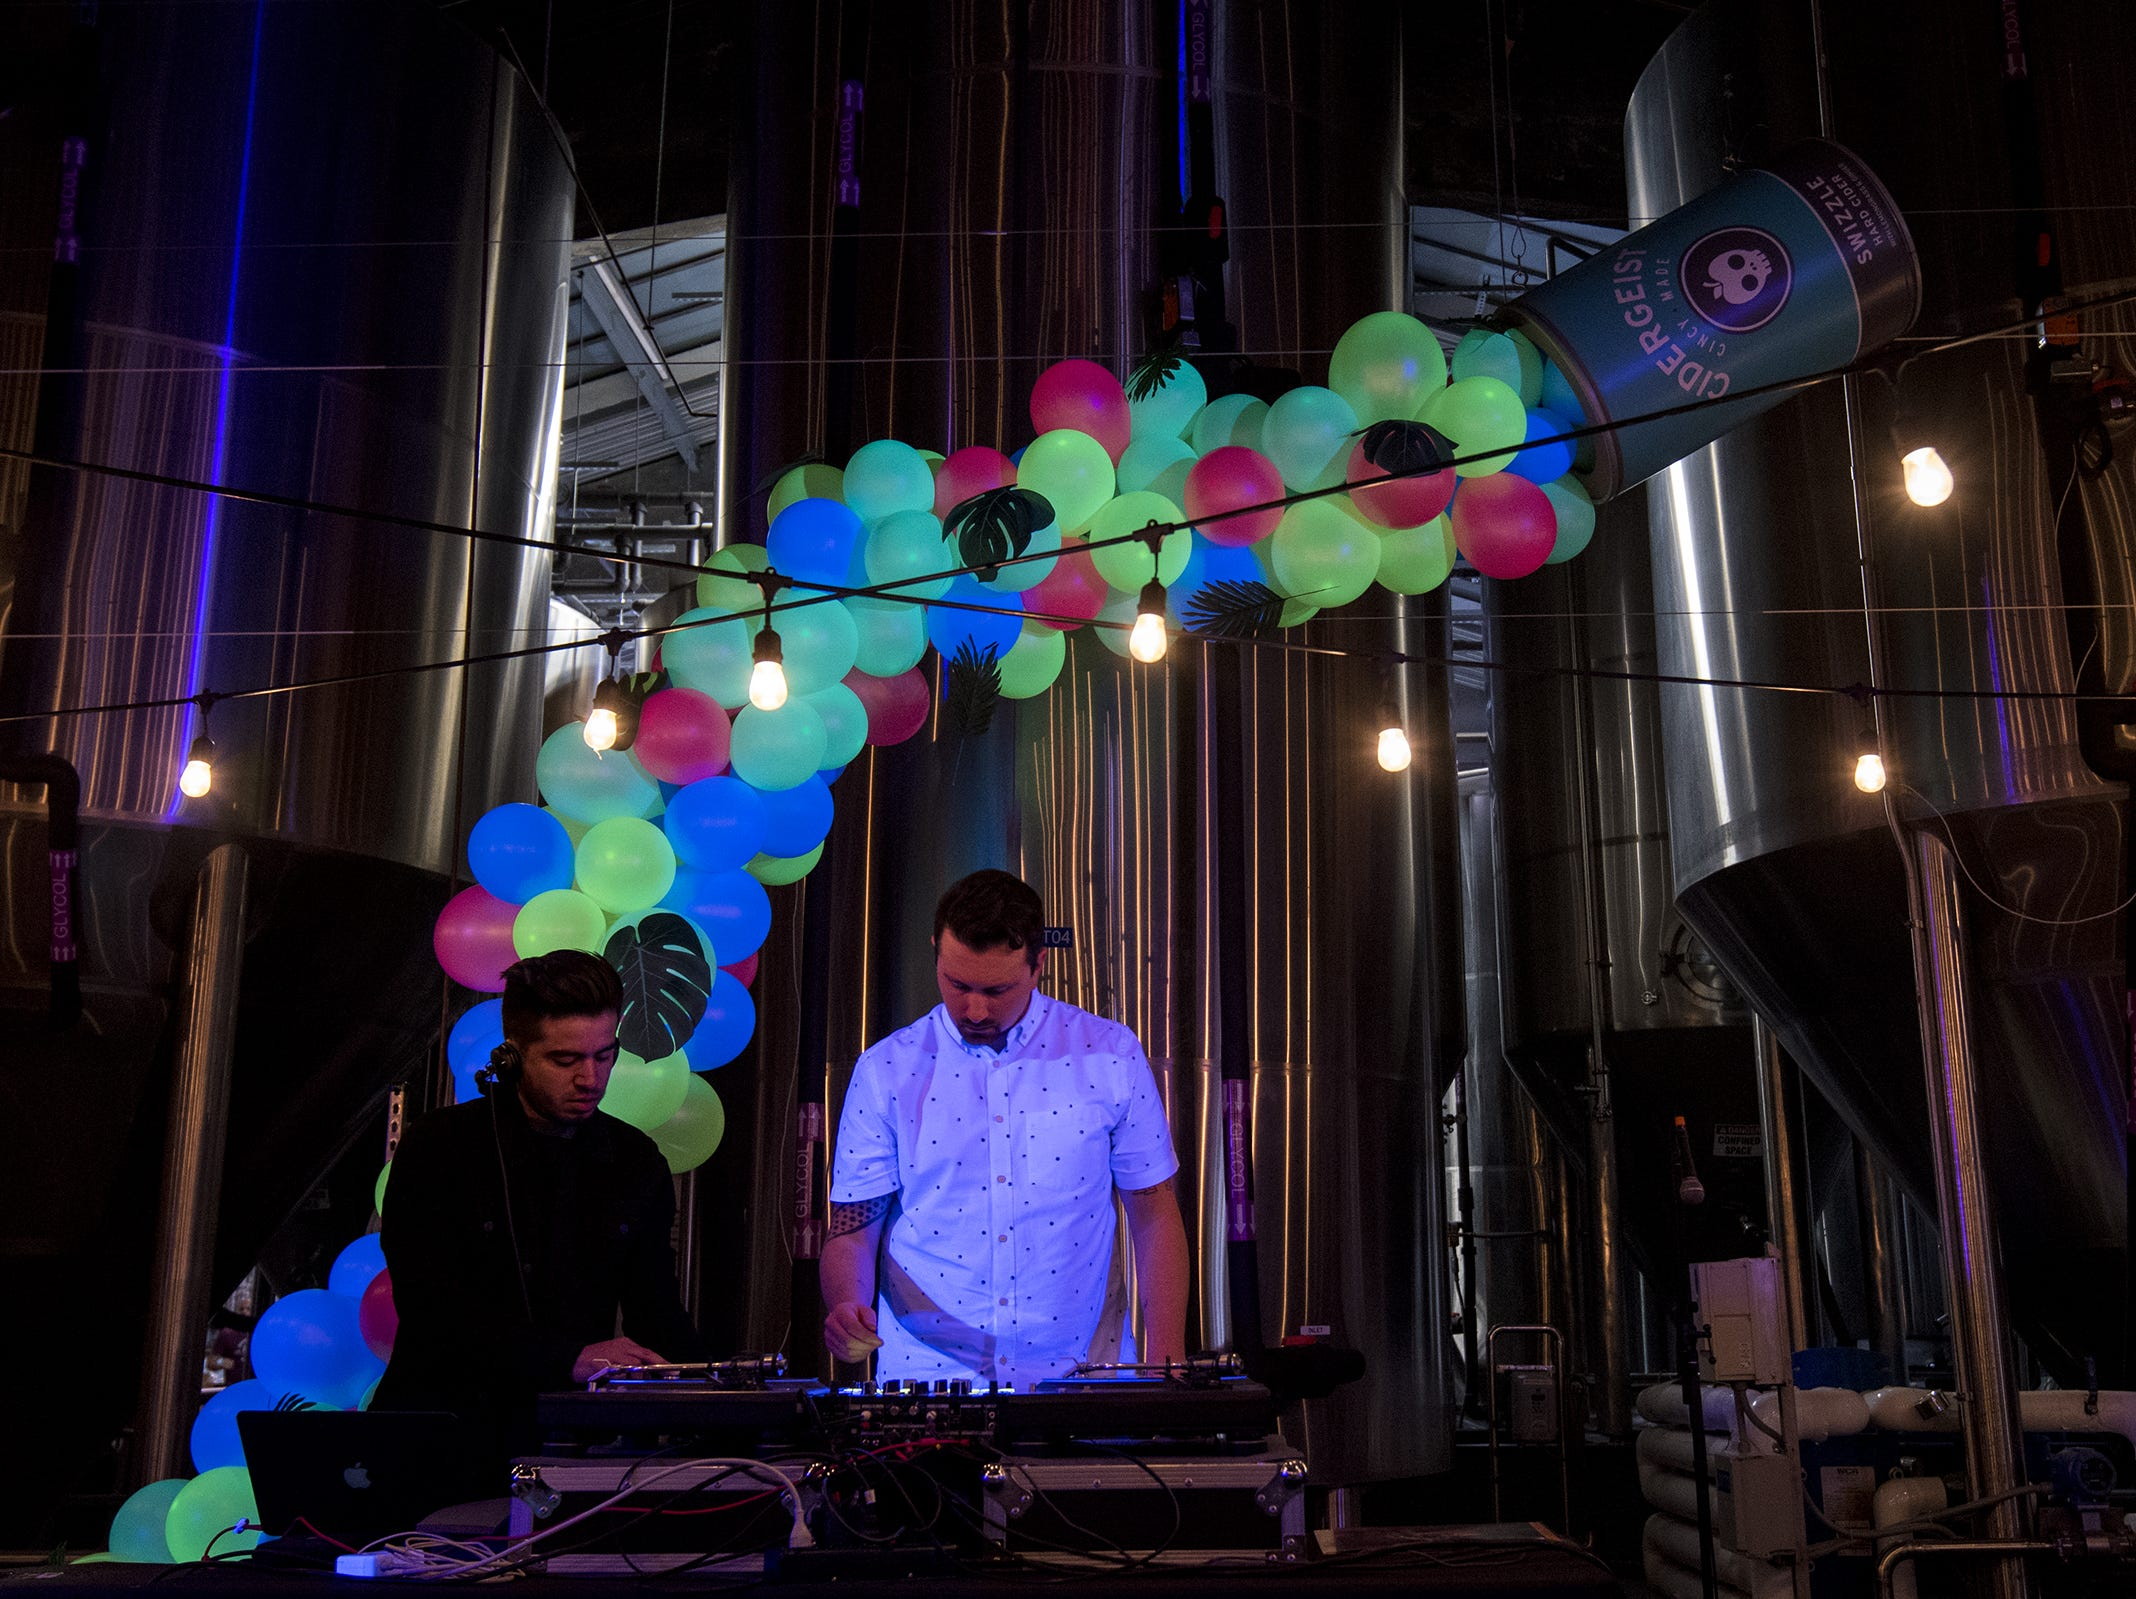 A giant Cidergeist Swizzle dumps balloons behind DJs Druski and Will Ross.